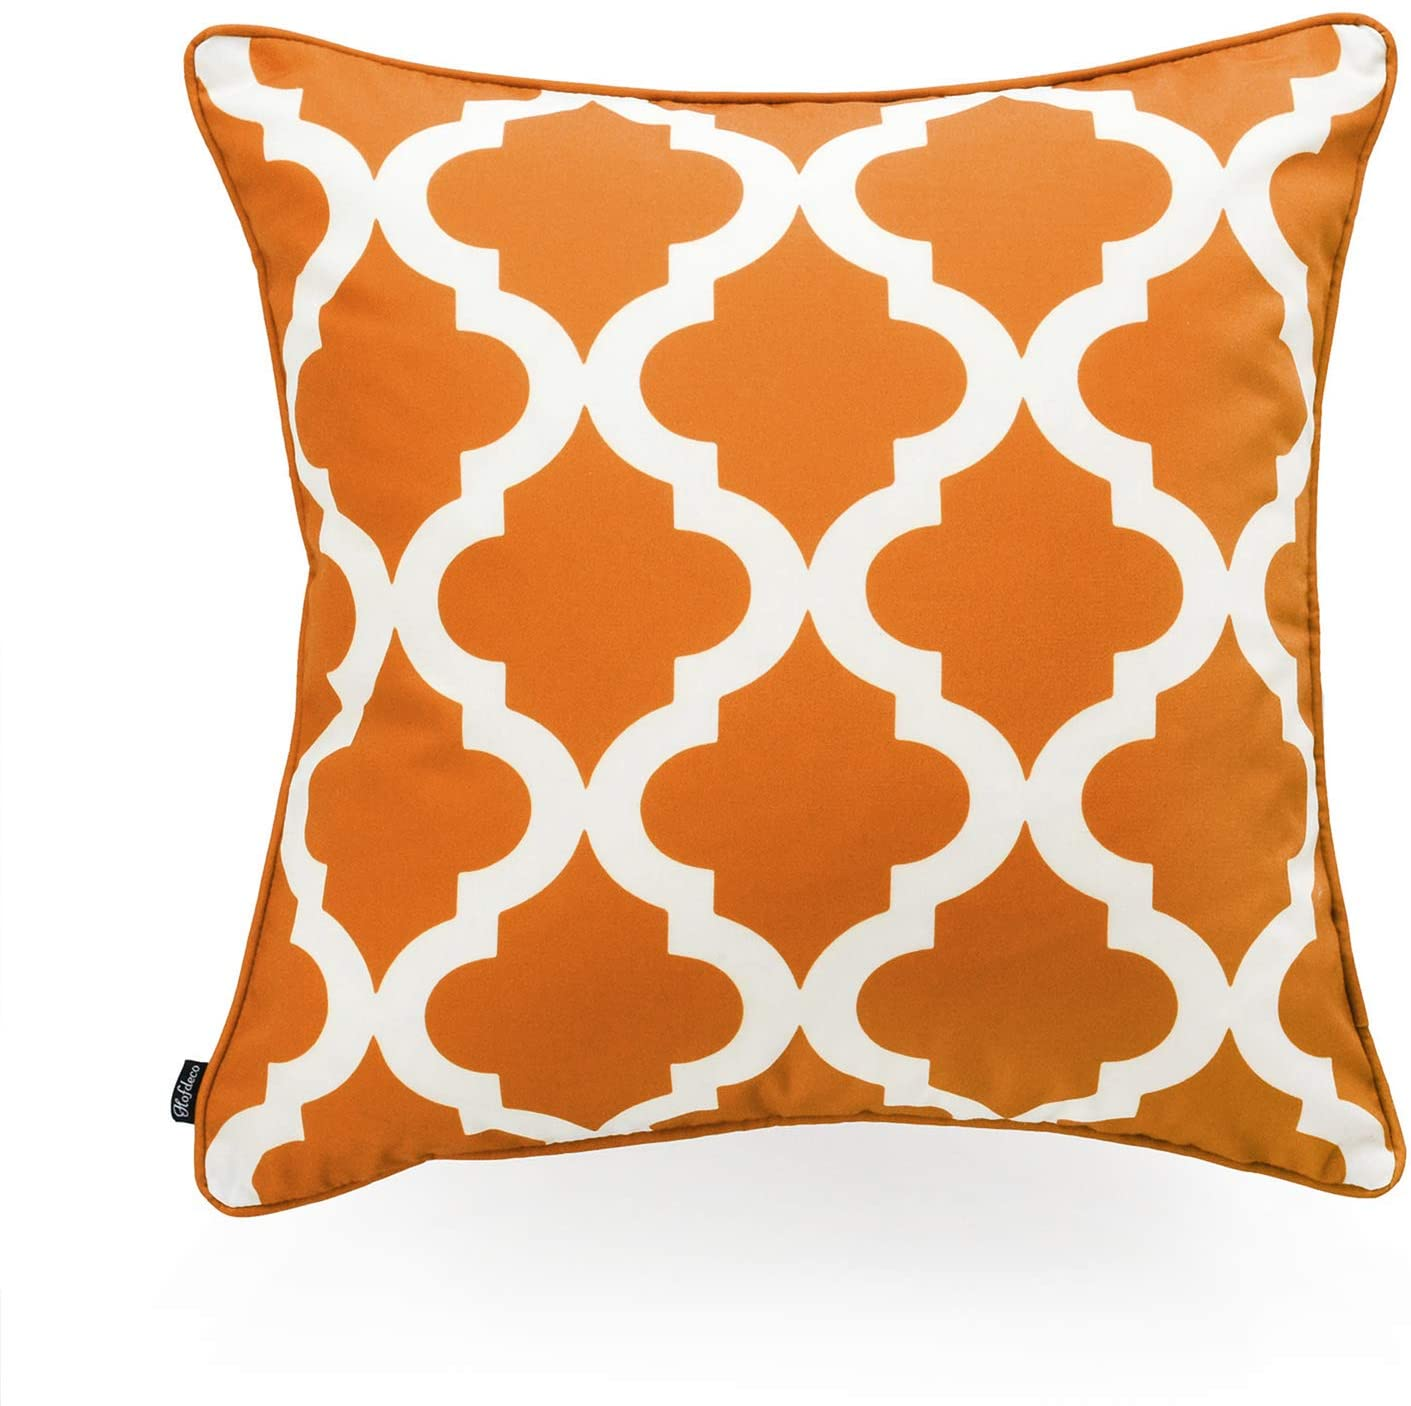 Hofdeco Indoor Outdoor Pillow Cover ONLY, Water Resistant for Patio Lounge Sofa, Fall Orange White Moroccan Quatrefoil, 18